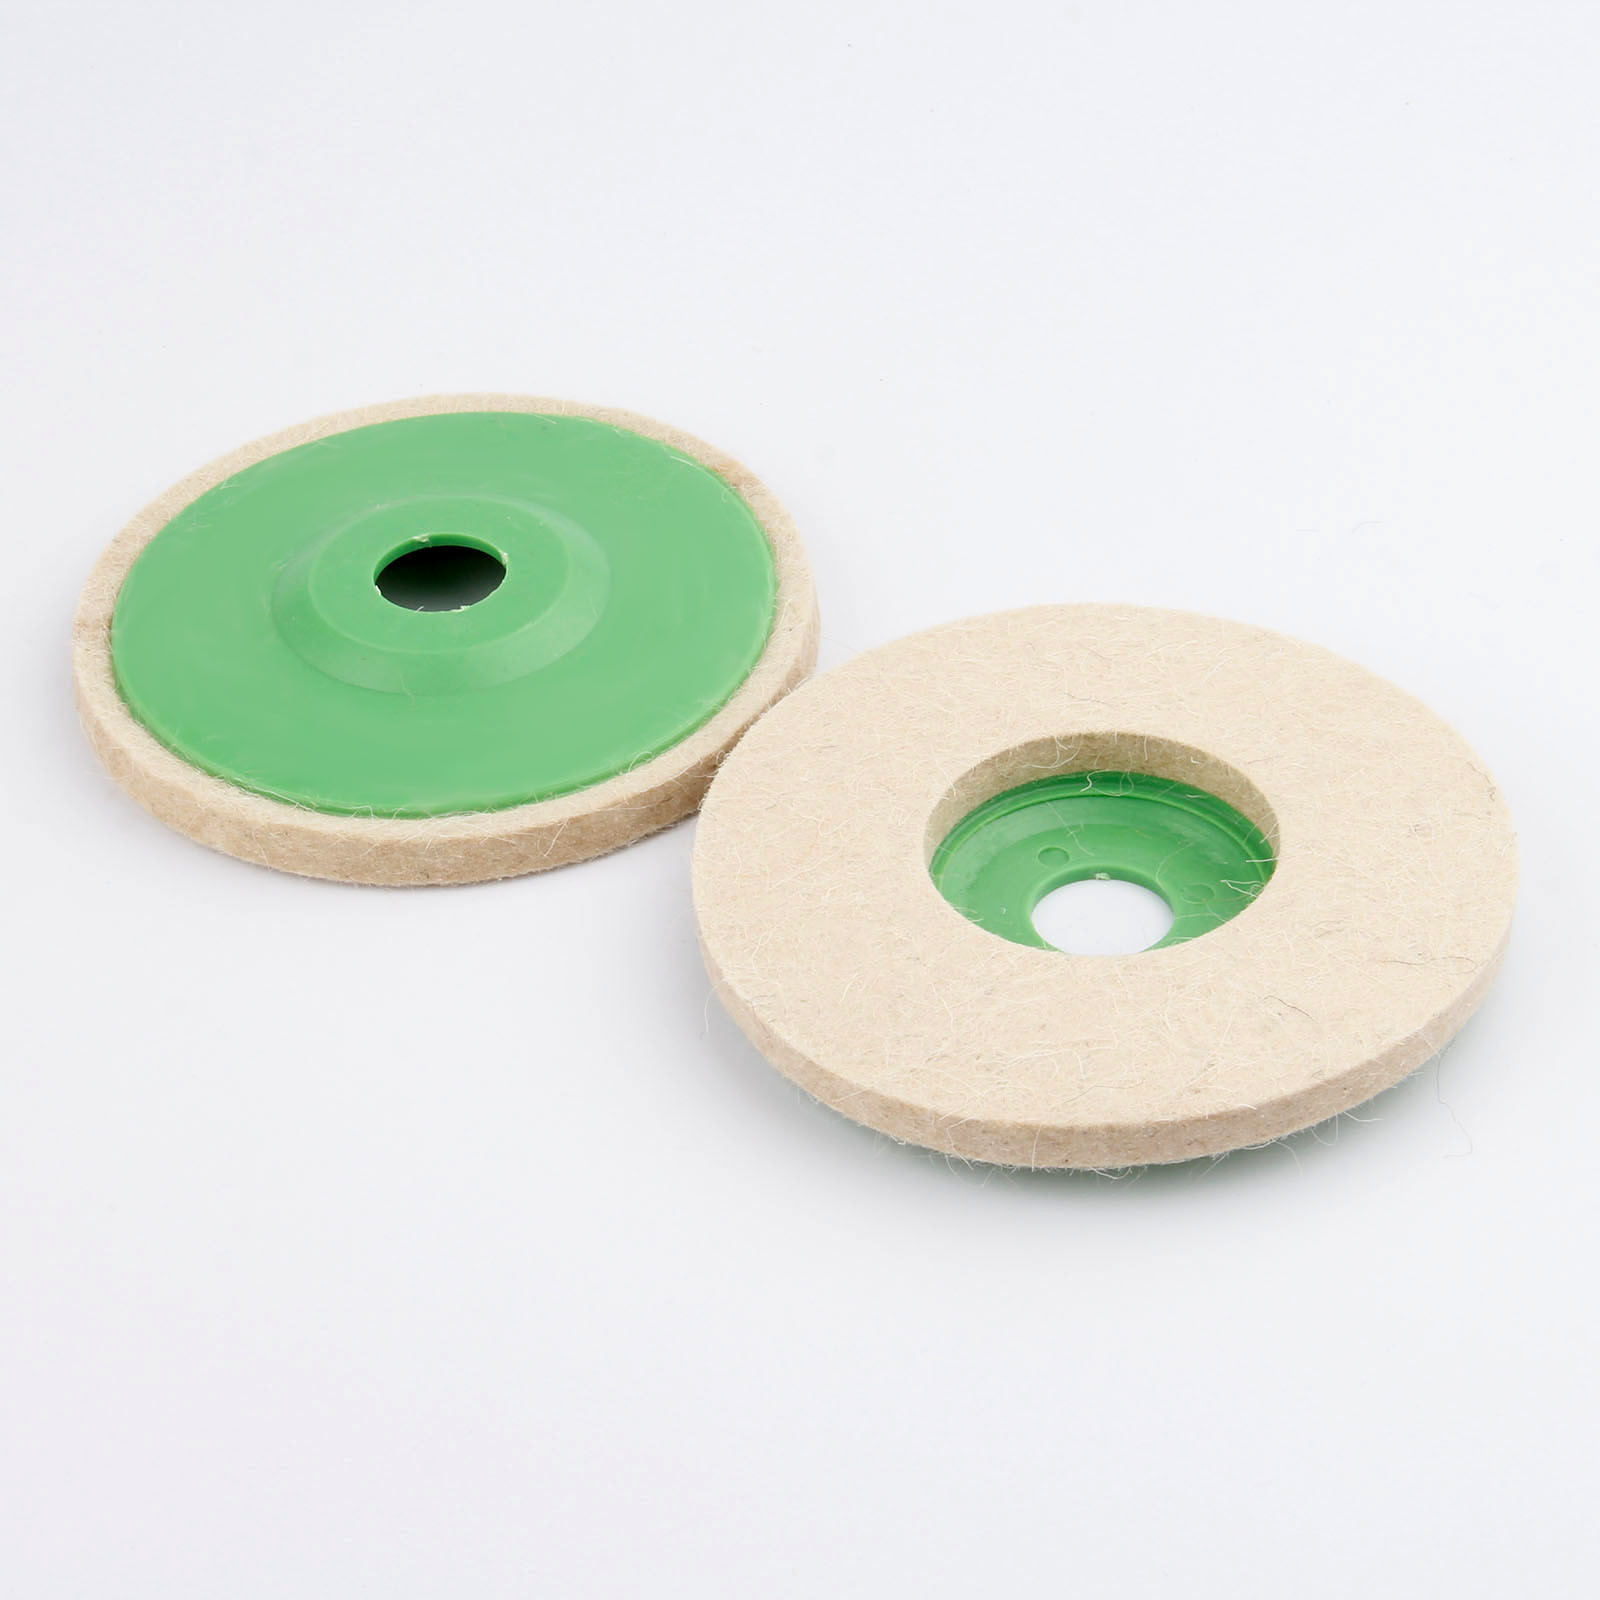 1Pk 125mm Buffing Grinding Pads Buffer Polisher Polishing Disc Washable 5 Inch